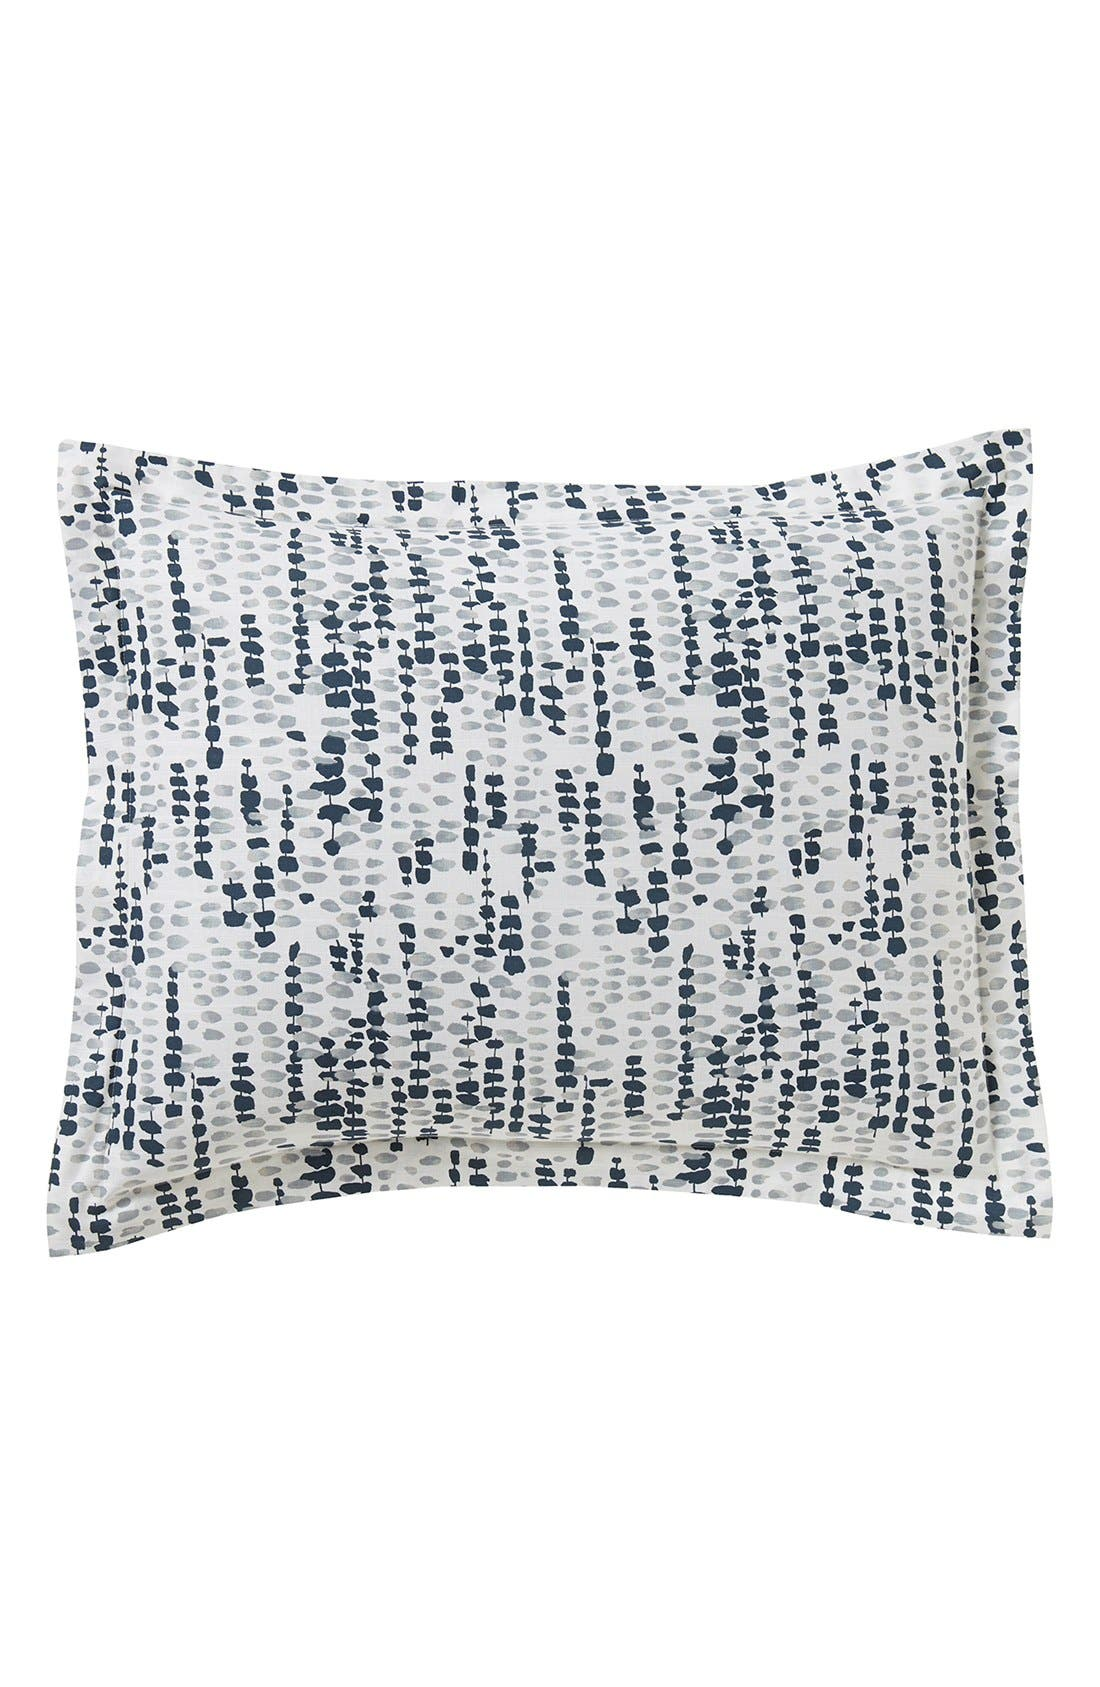 DwellStudio 'Lucienne' Shams (Set of 2)